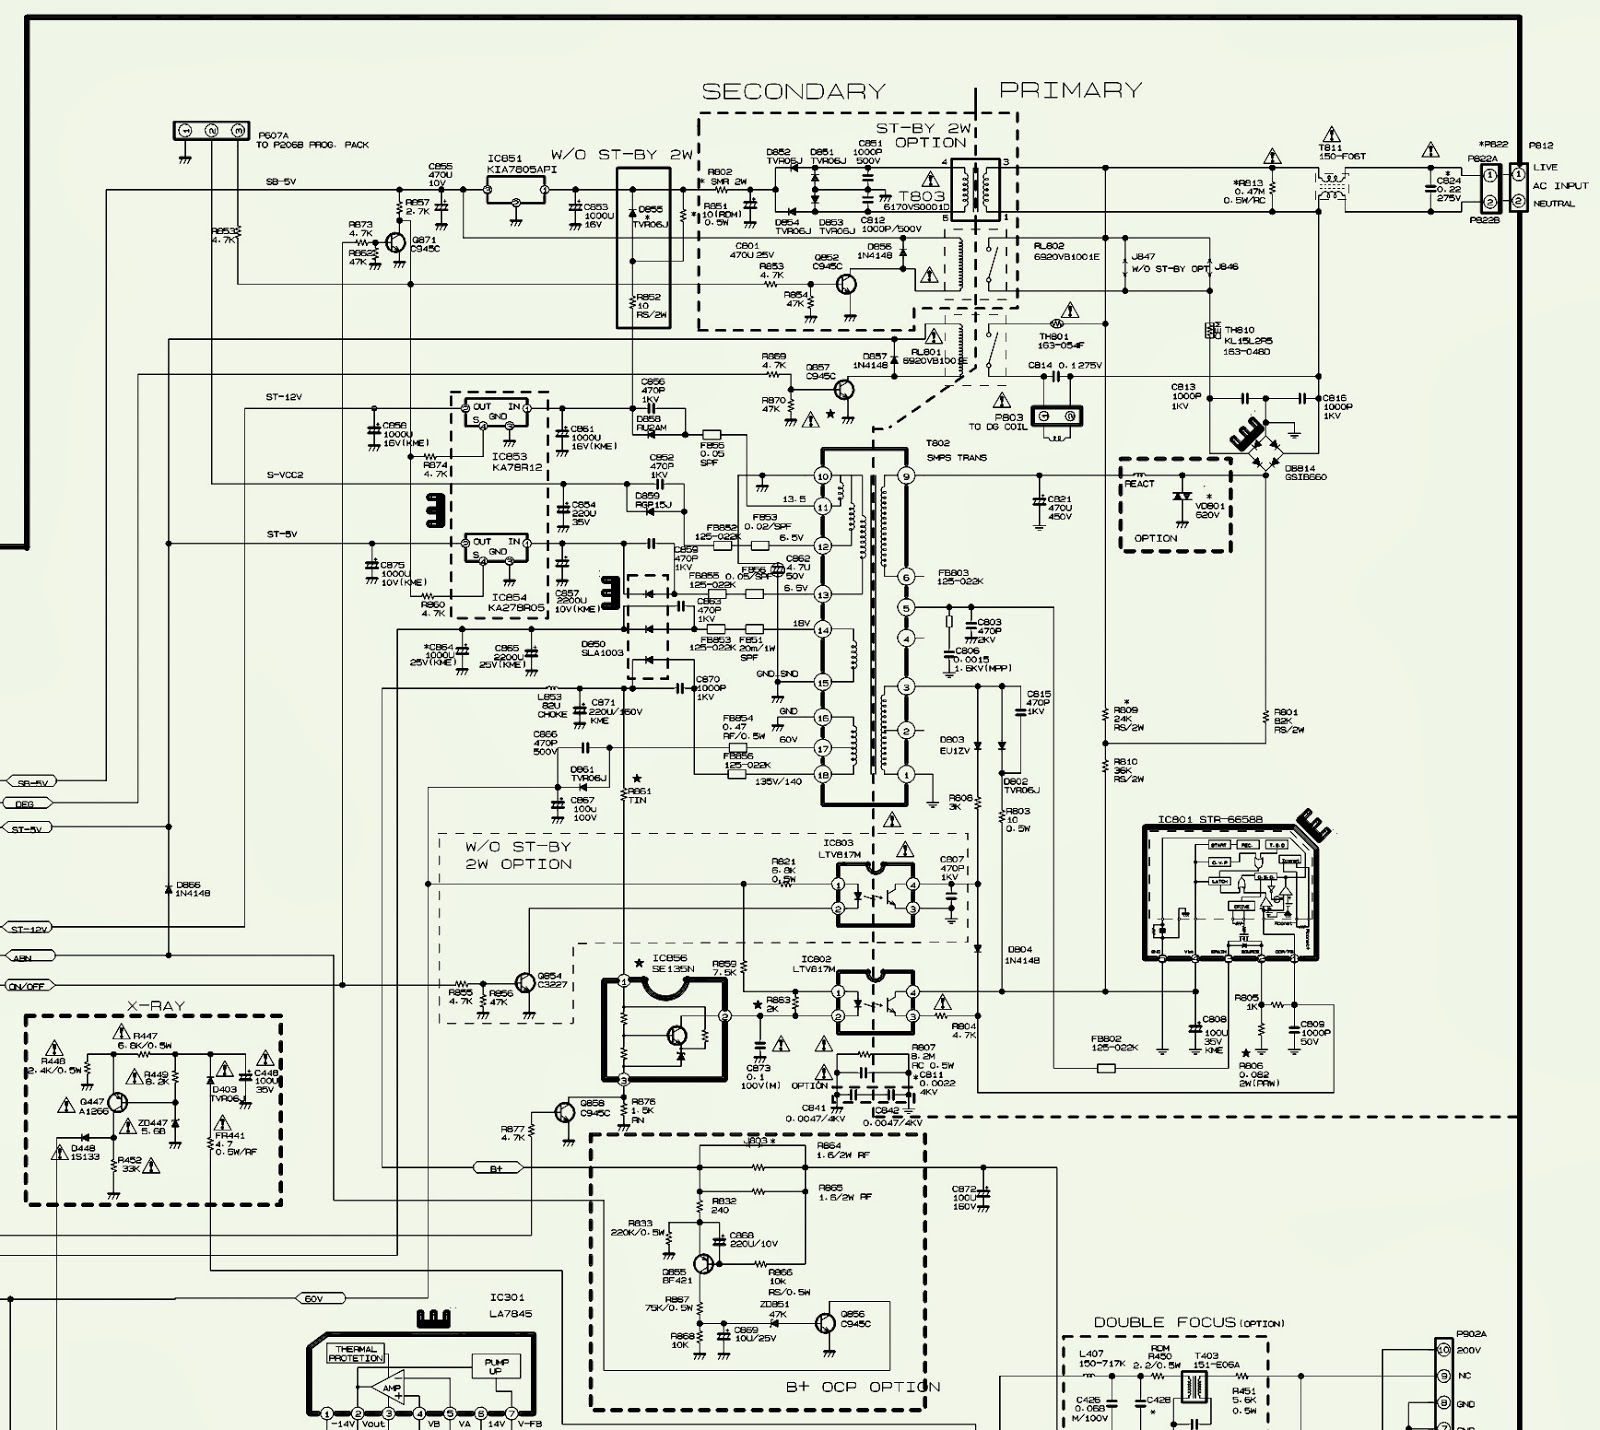 lcd wiring diagram lcd image wiring diagram lcd tv wiring diagram lcd wiring diagram collections on lcd wiring diagram